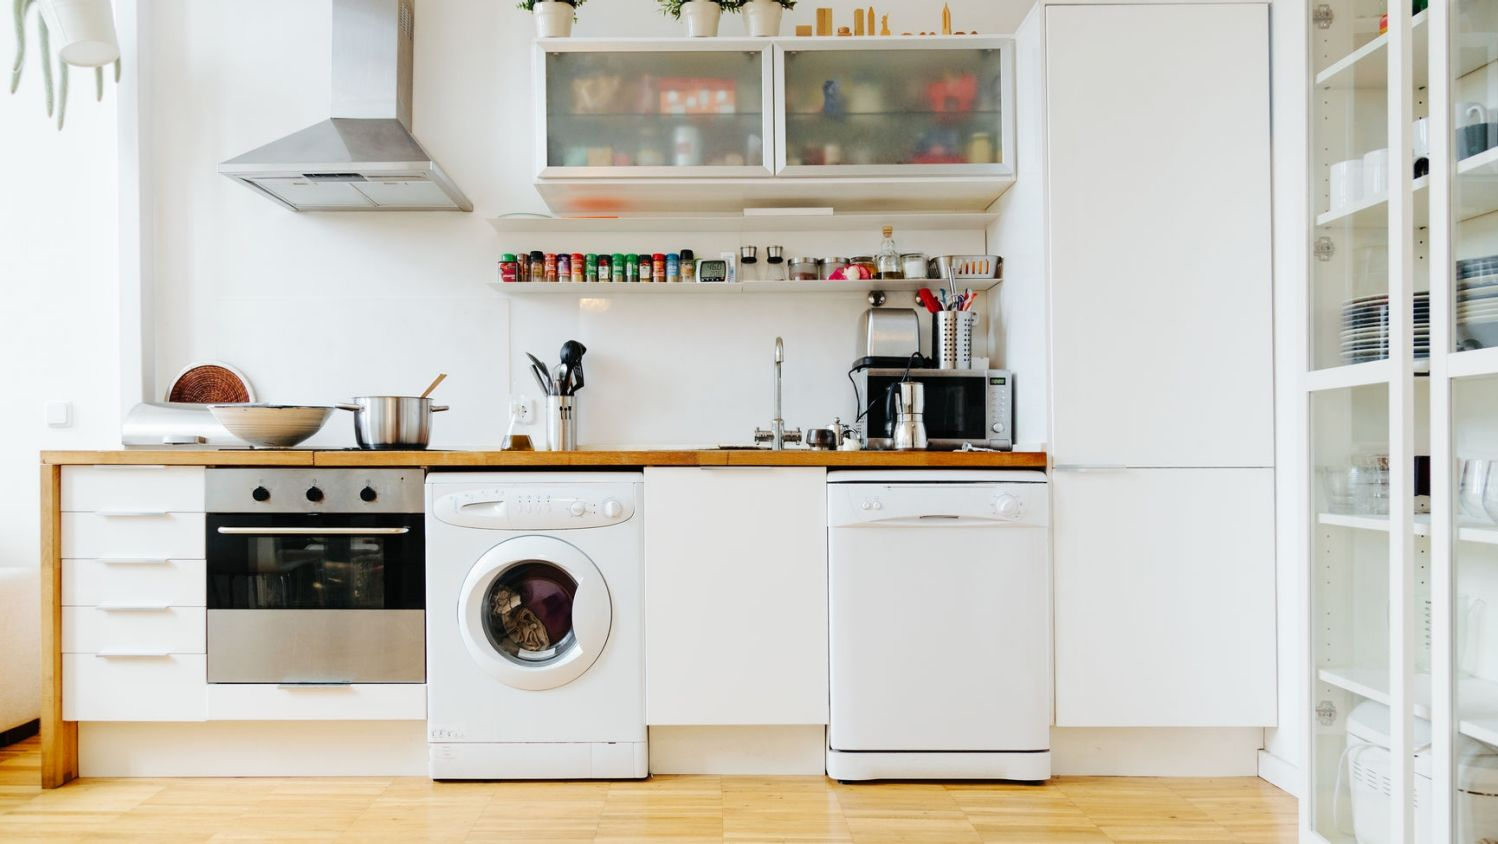 The appliances in your home that are costing you the most money